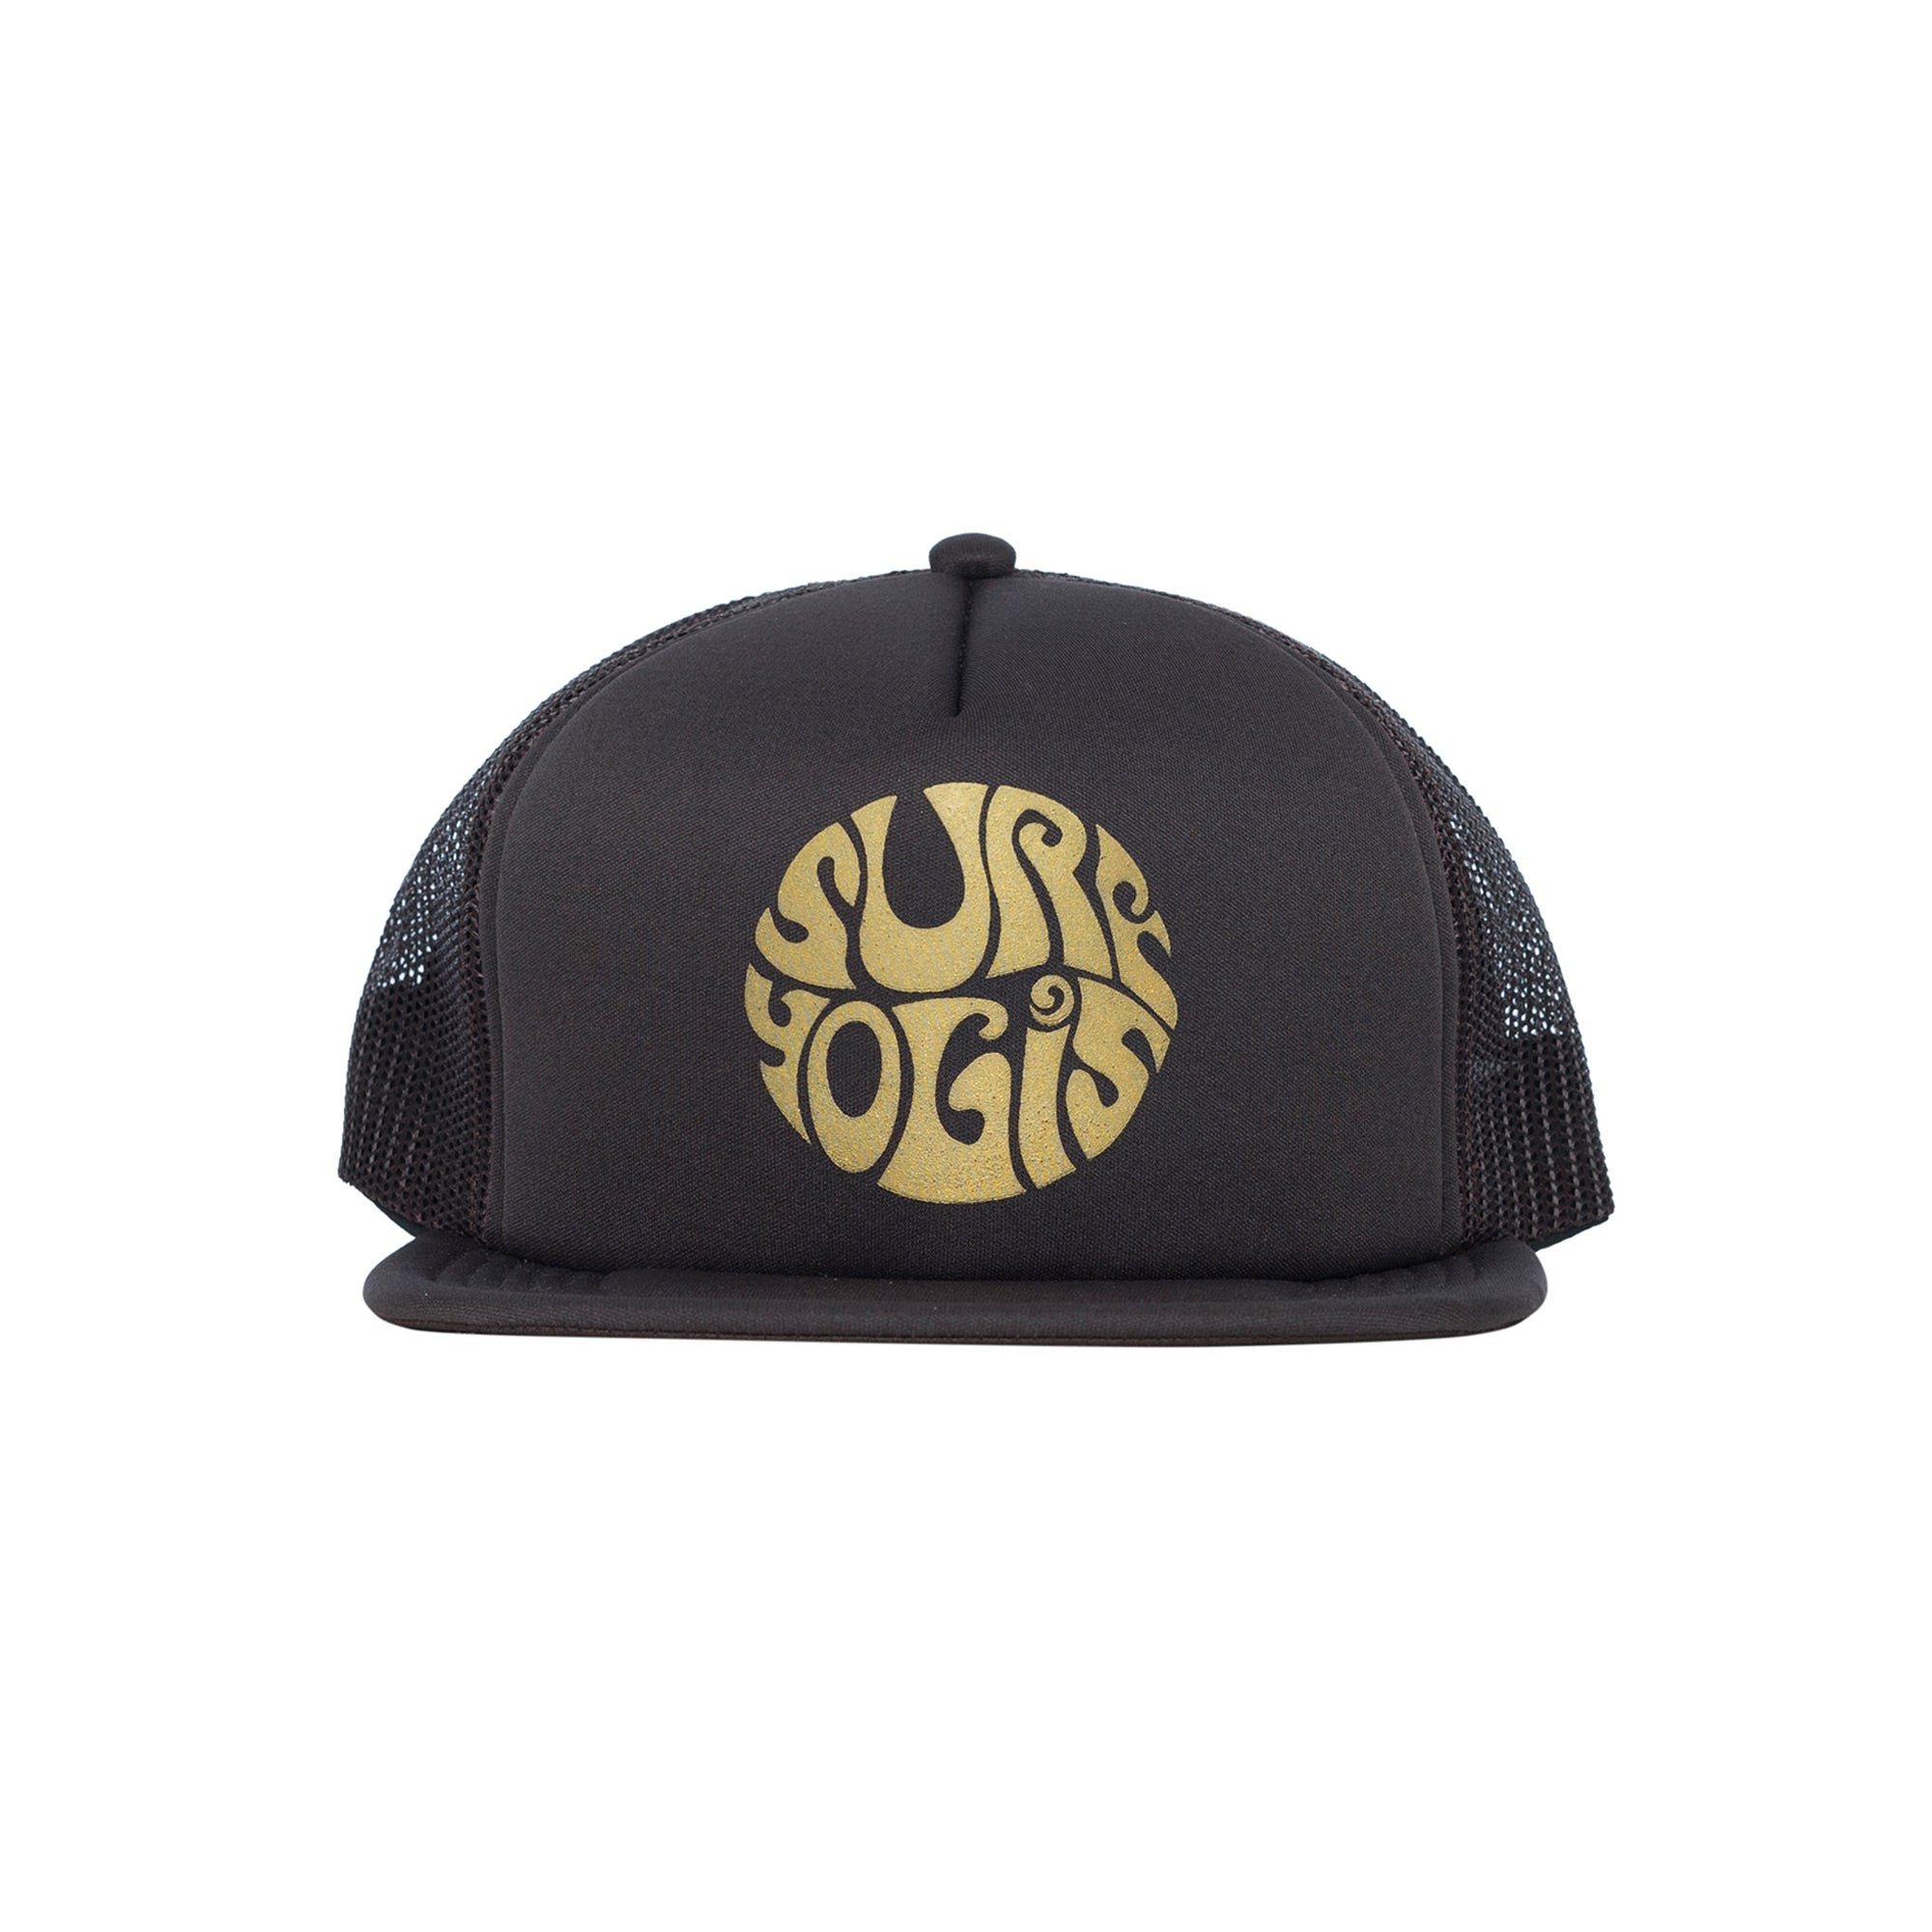 Brown Trucker Hat. Gold Surfyogis logo centre front panel.